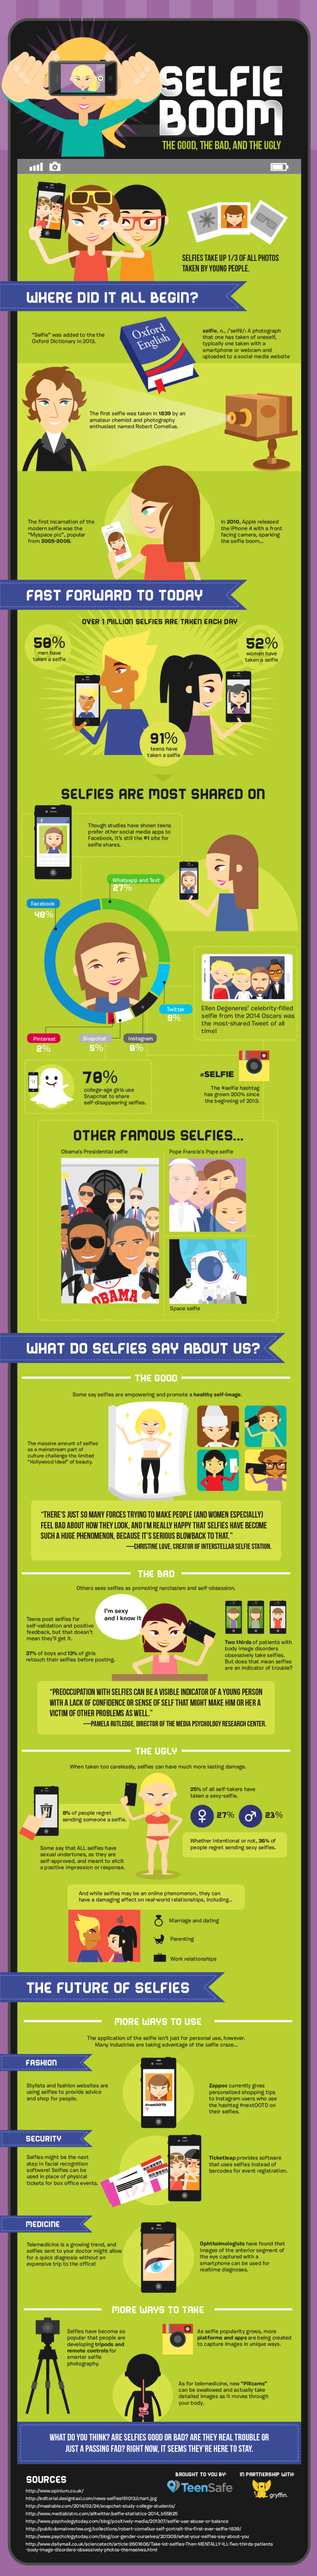 Selfies - Good, Bad, Ugly